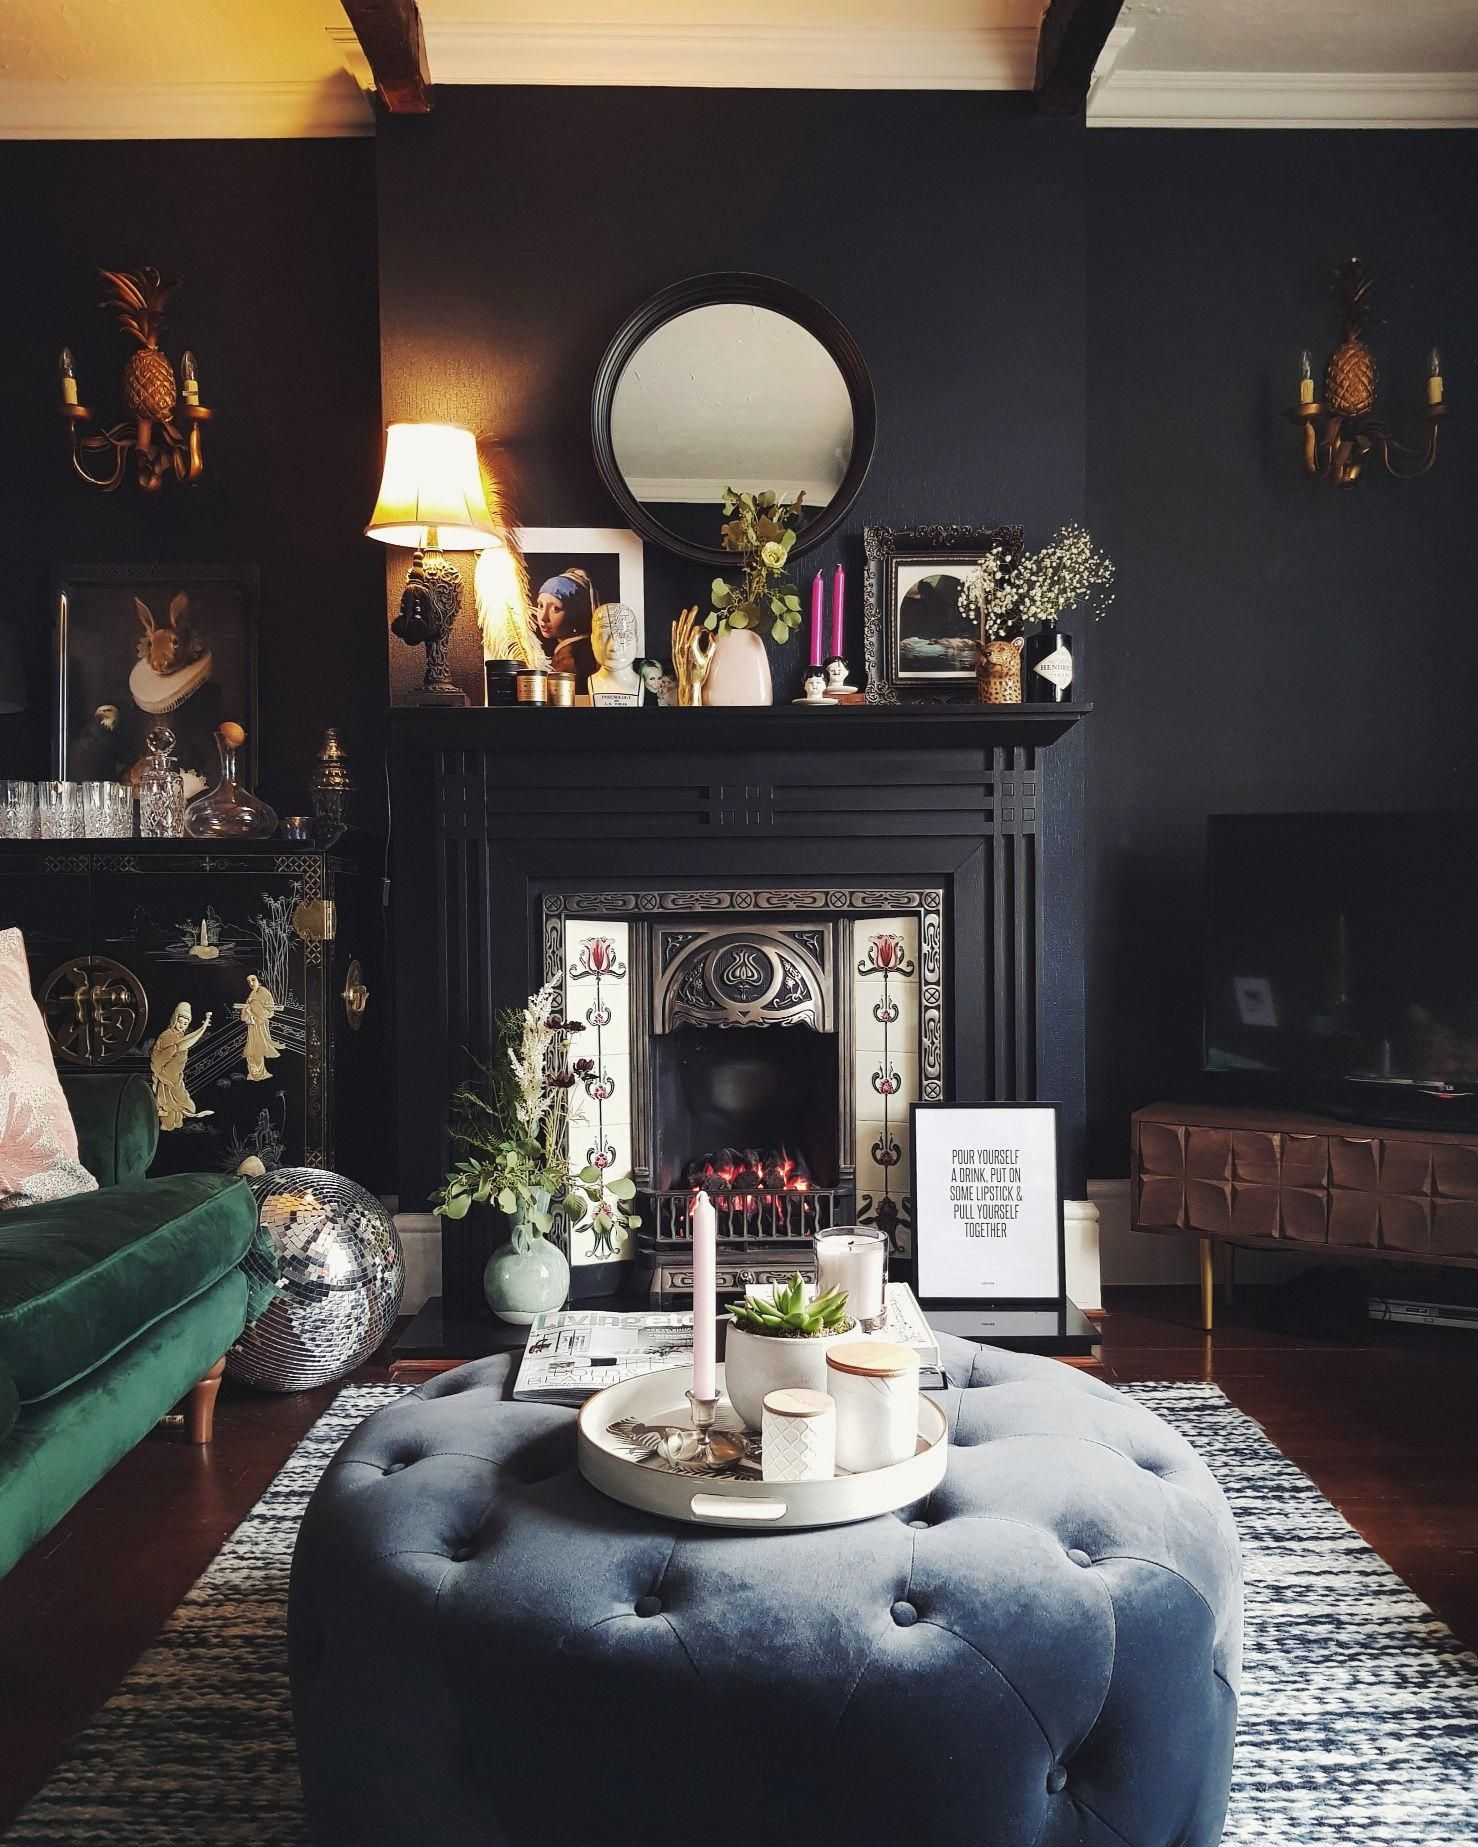 Dark And Moody Victorian Living Room Interior Black Fireplace Dark Blue Walls Velvet Furniture Dark Blue Living Room Black Living Room Living Room Design Dark